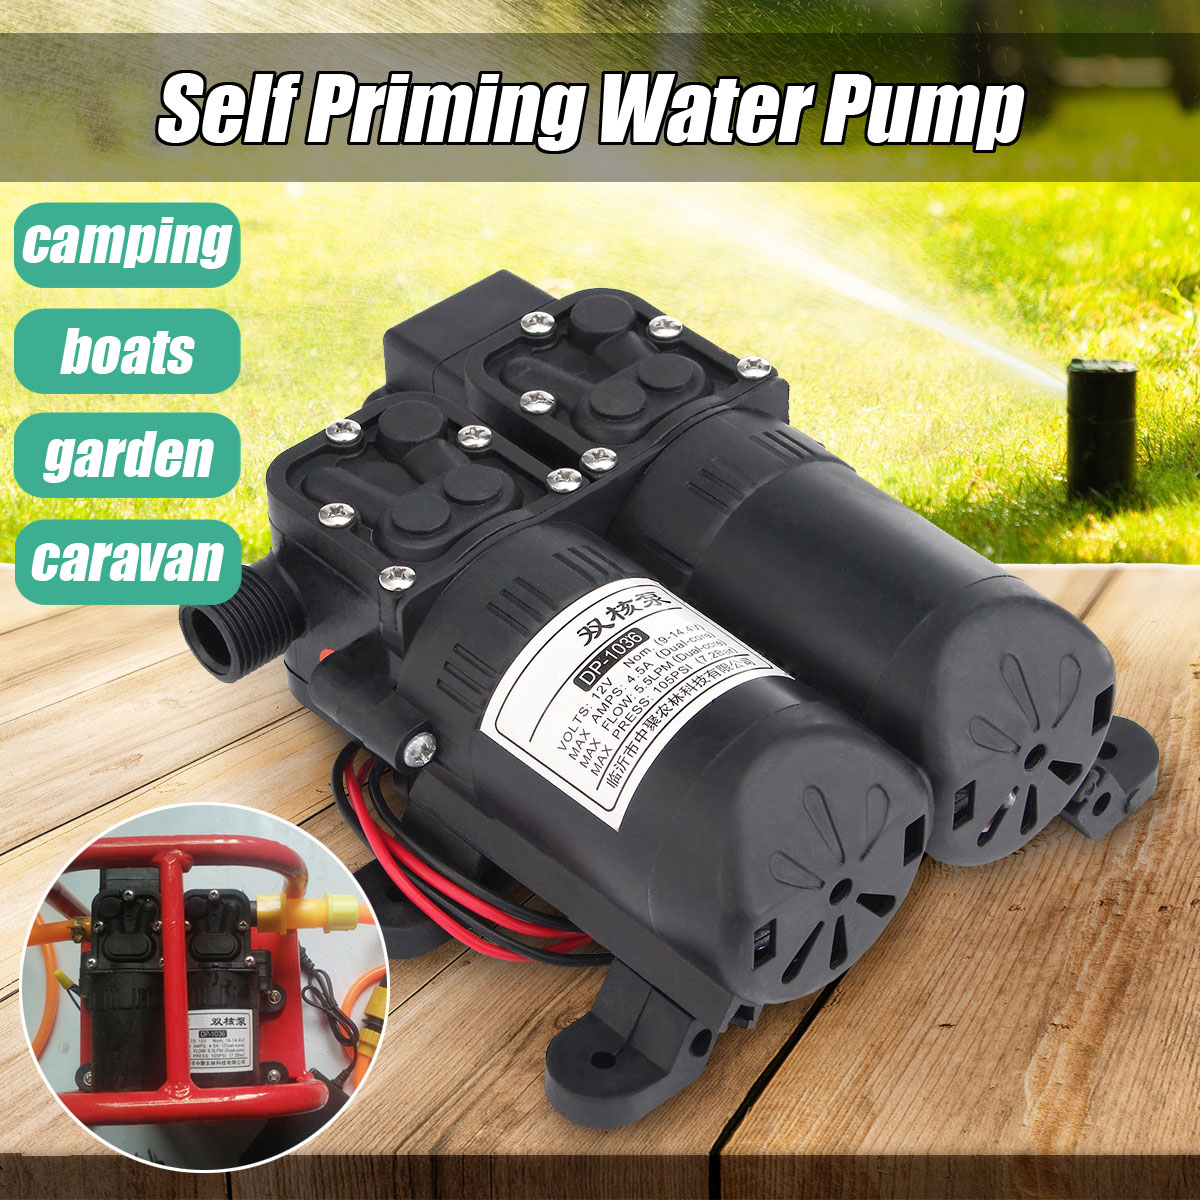 12V Dual Electric Motor 5.5LPM 105PSI High Pressure Self Priming Diaphragm Water Pump For Home Garden Boat Caravan Marine Pump